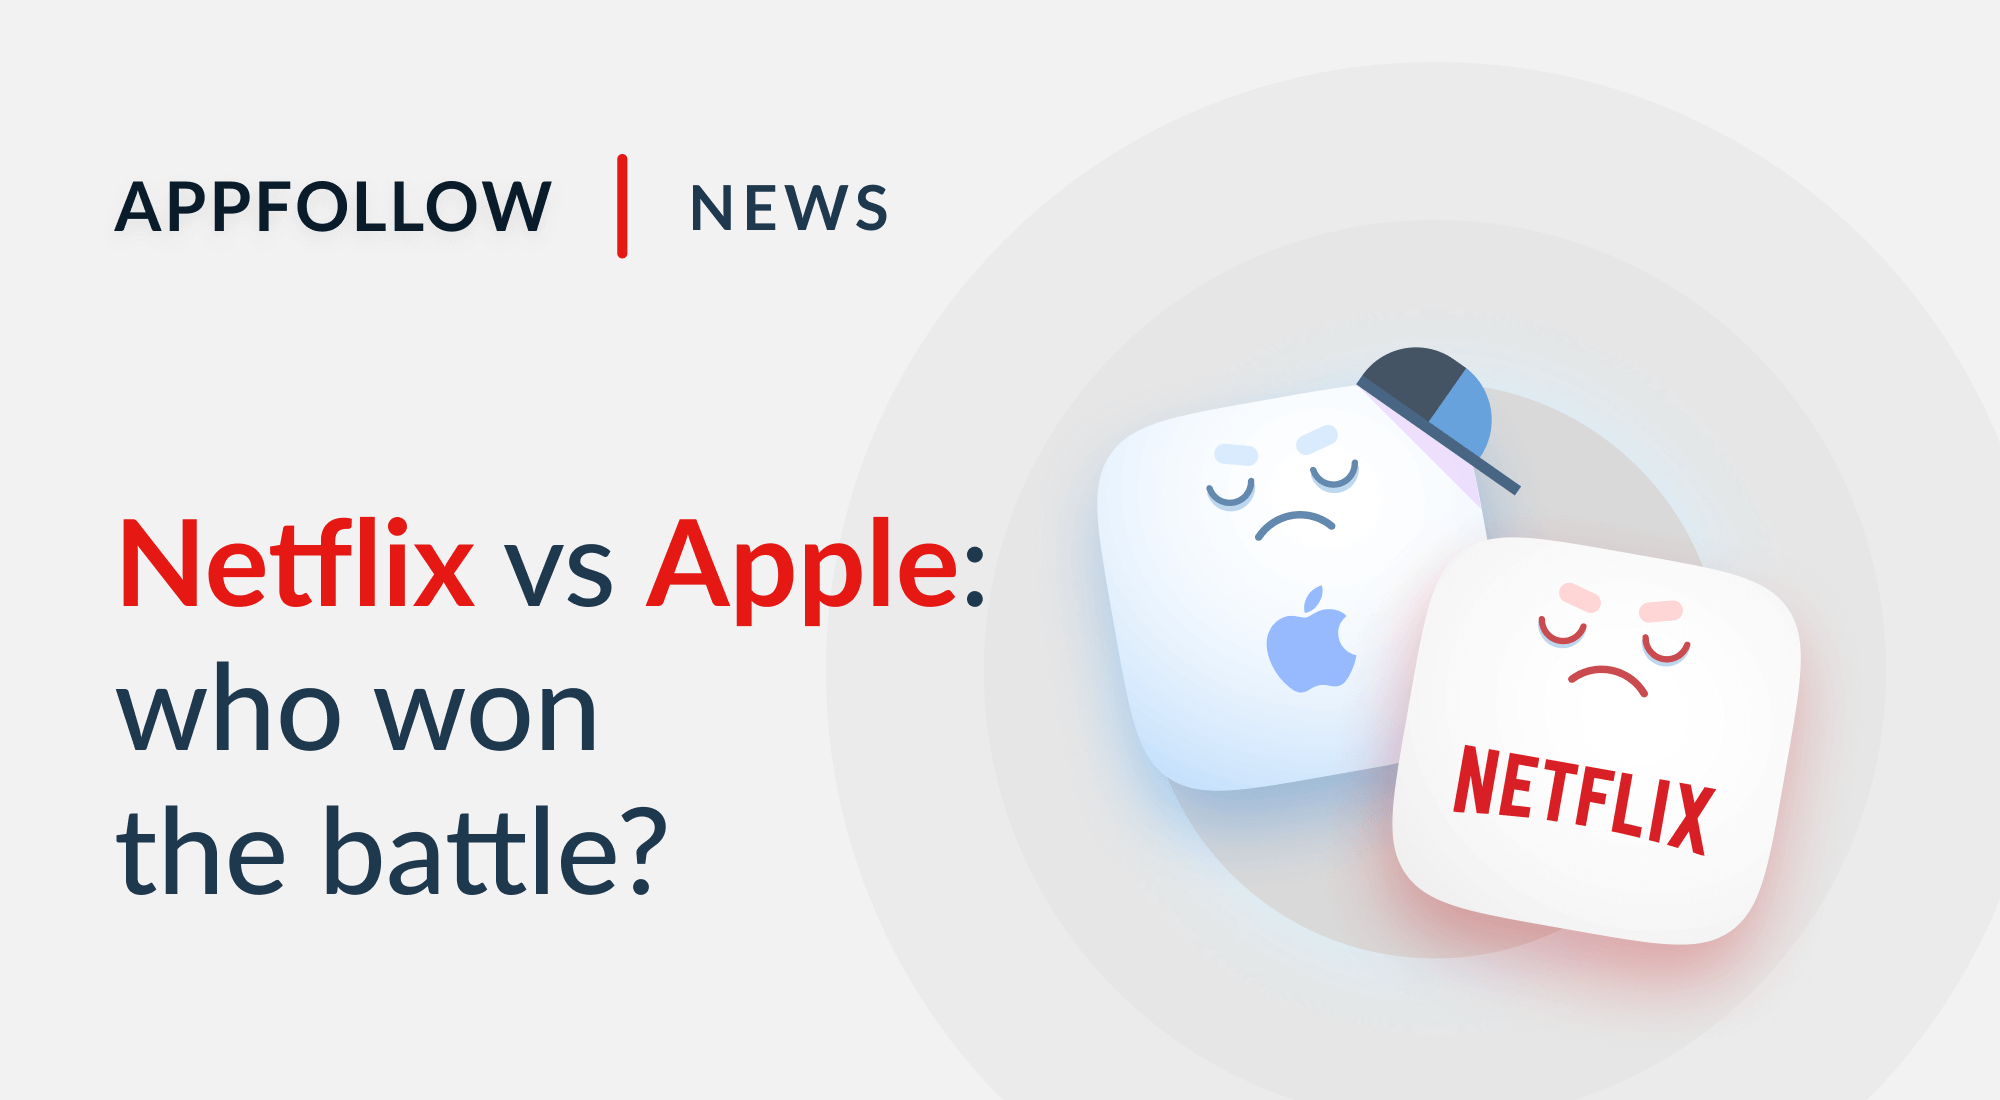 Netflix vs Apple: What Happened? And How Google Play Could Capitalize